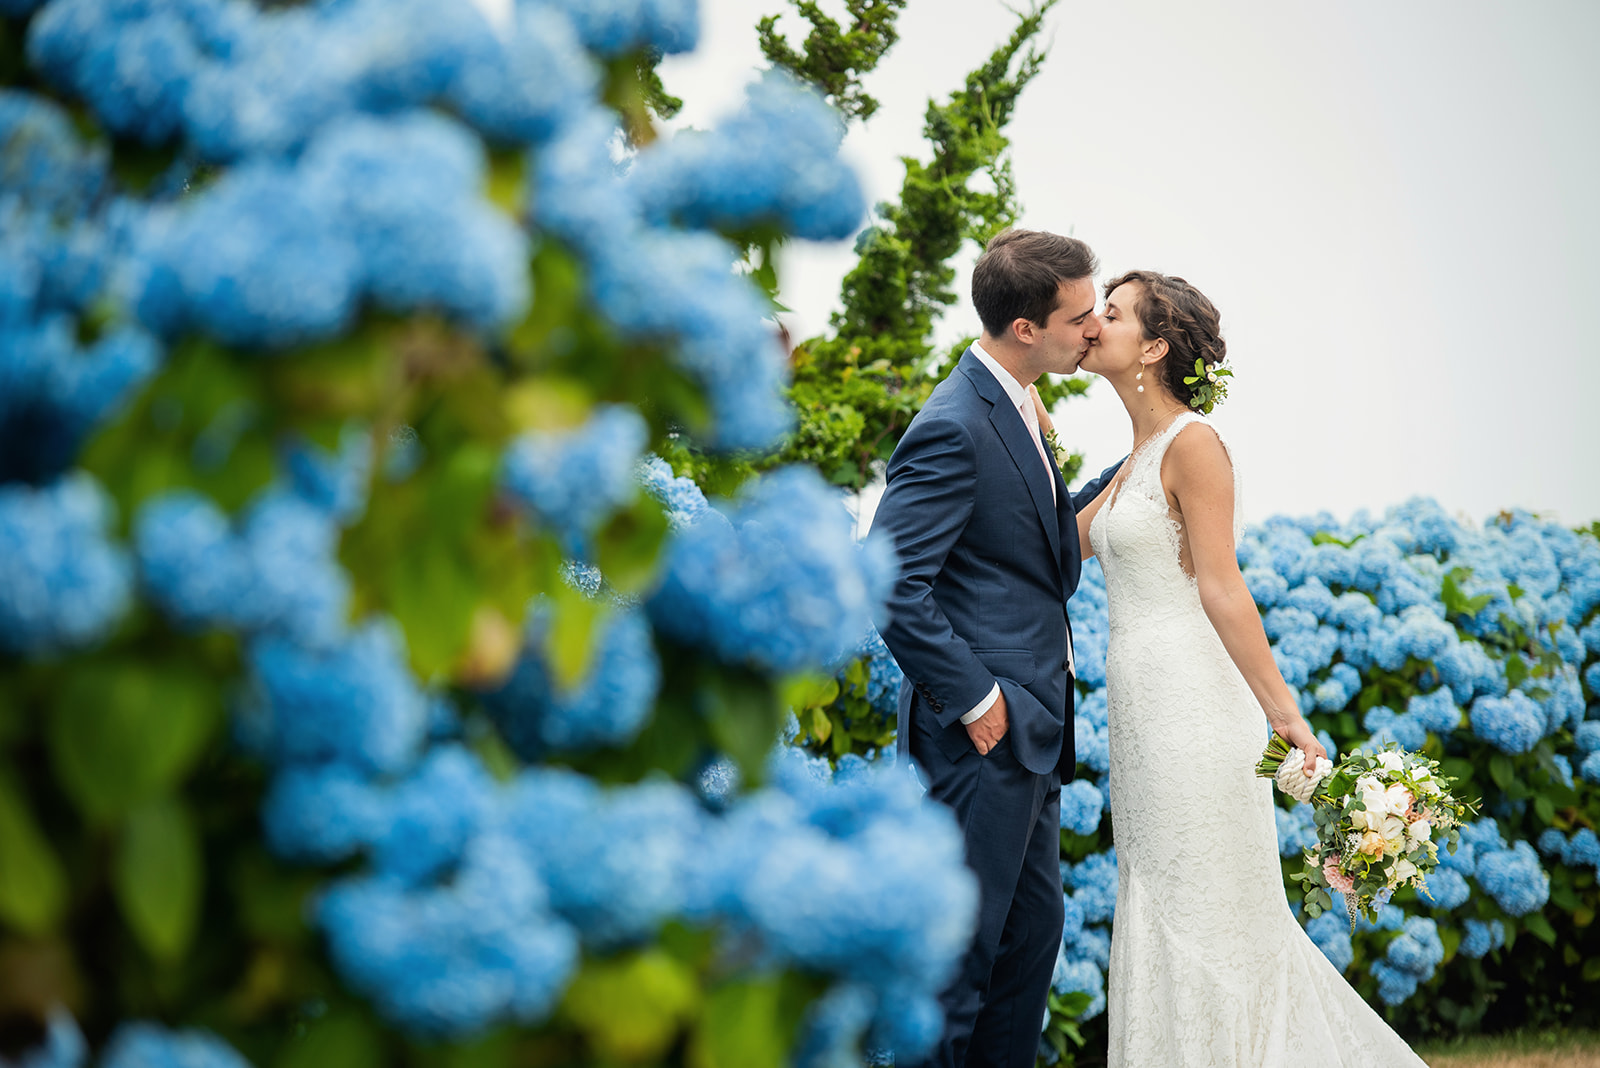 Rhode Island Wedding -HBT Photography- Destination Wedding - RI Wedding